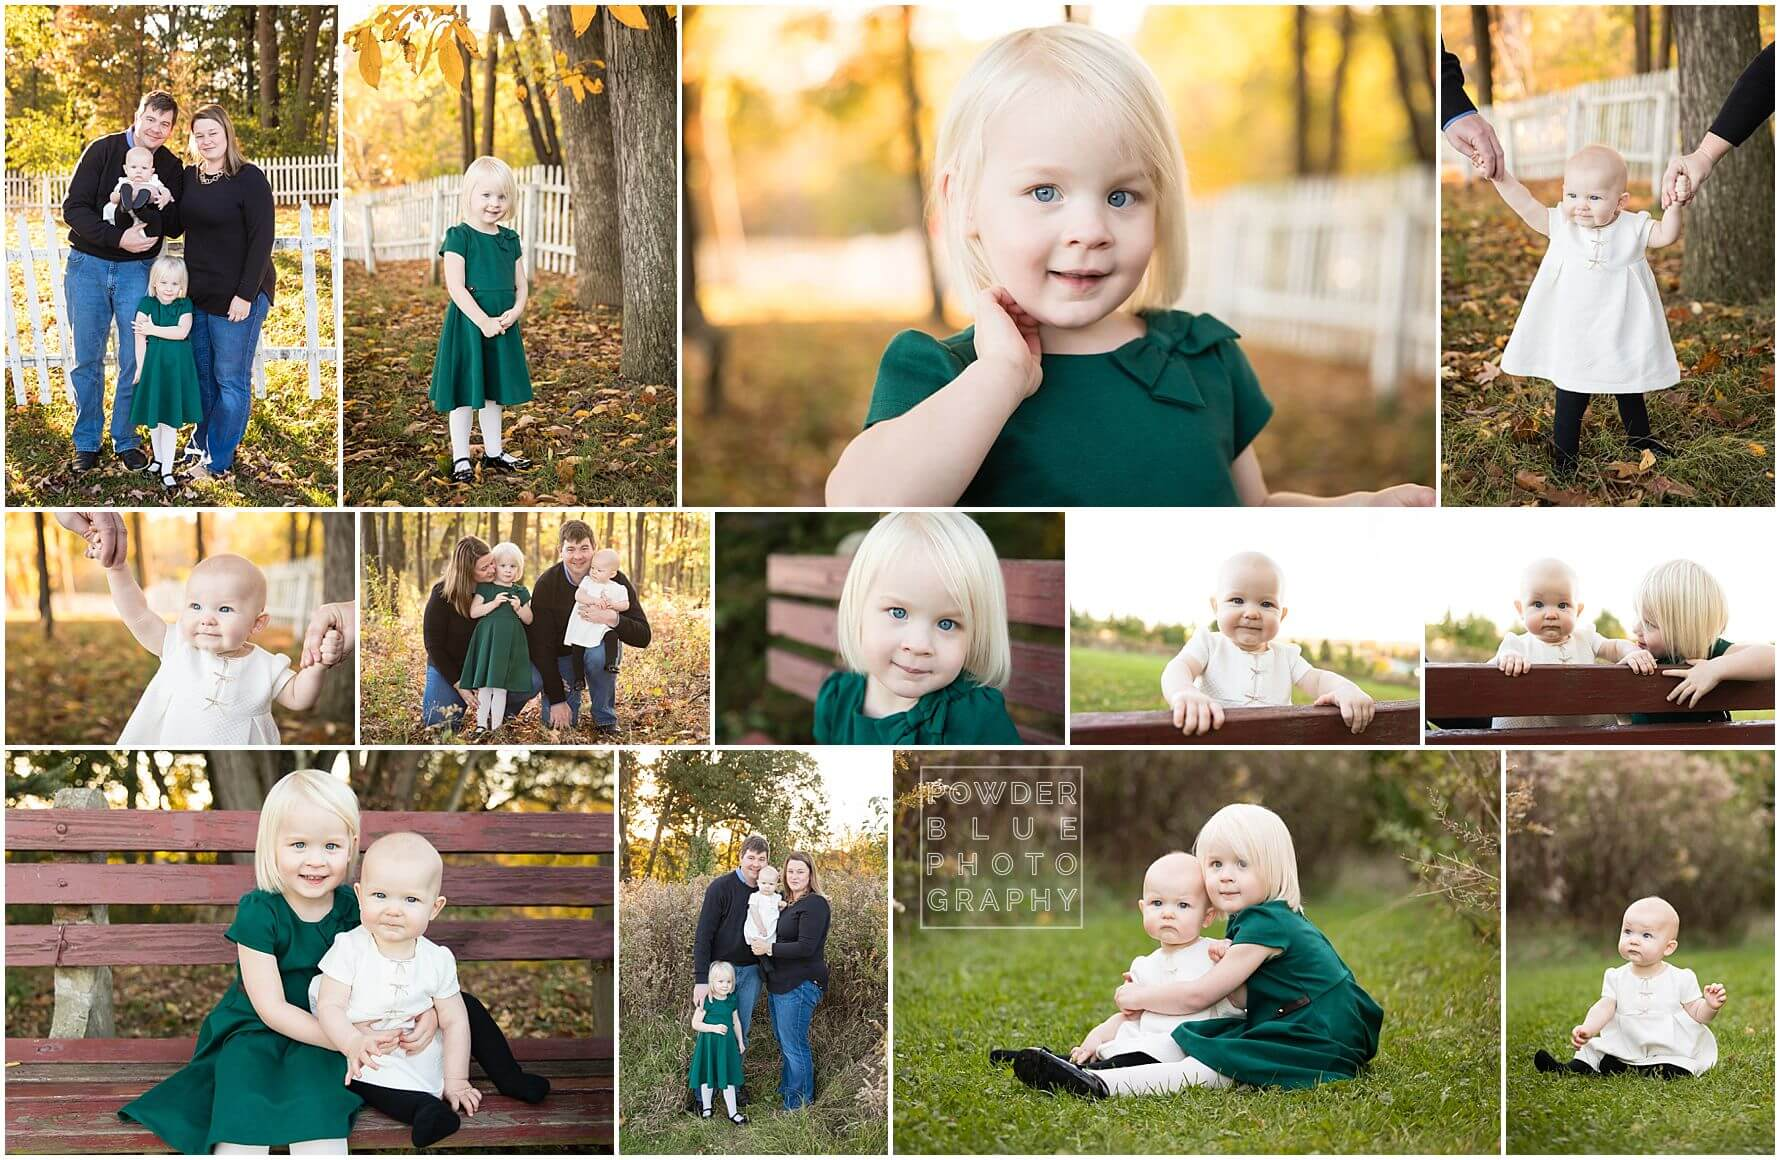 fall mini portrait session at fairview park in pittsburgh, pa. pittsburgh family photographer.